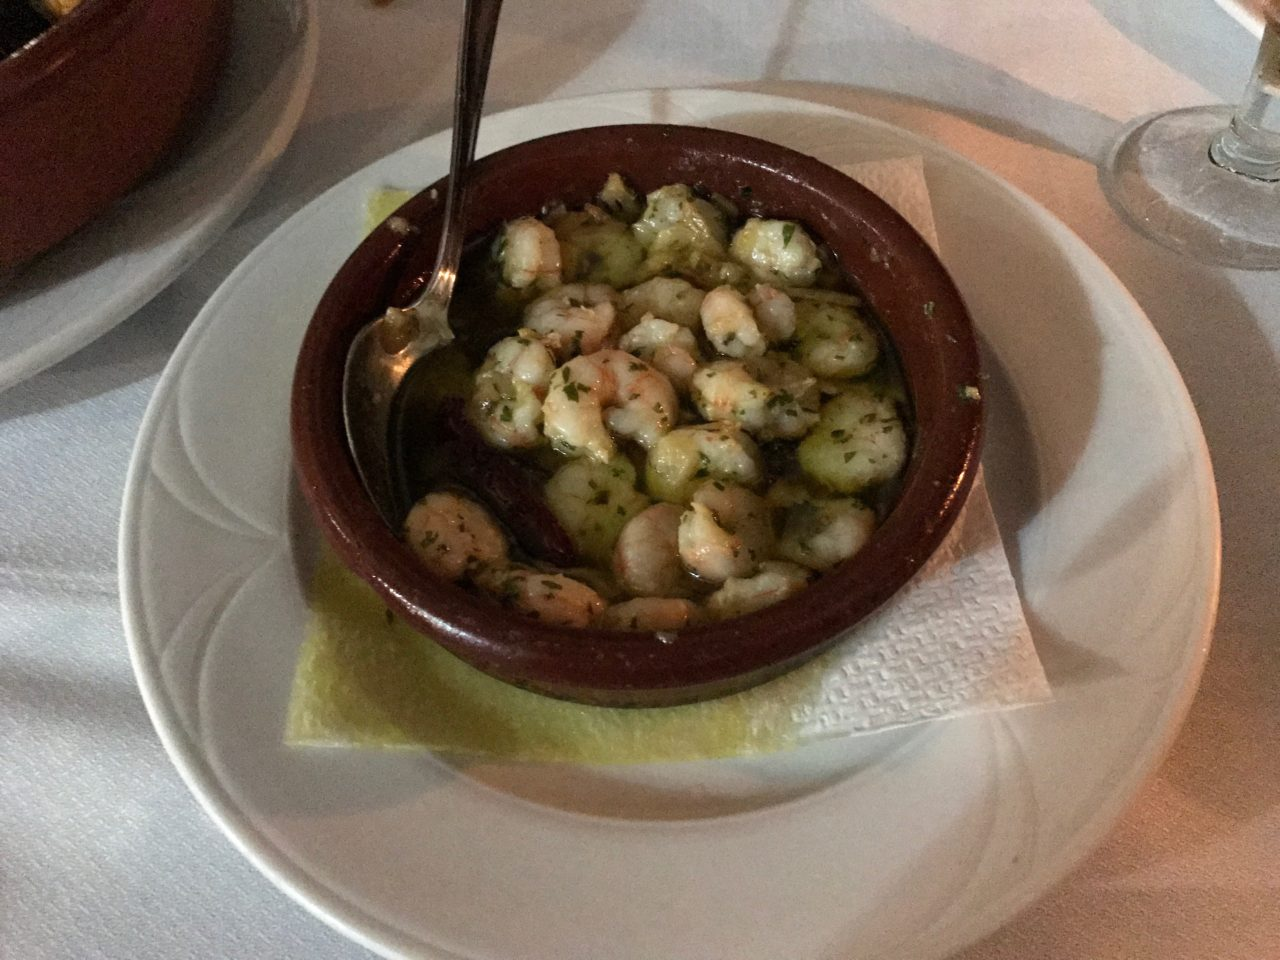 Cooked Shrimp In Butter Starter On A Plate